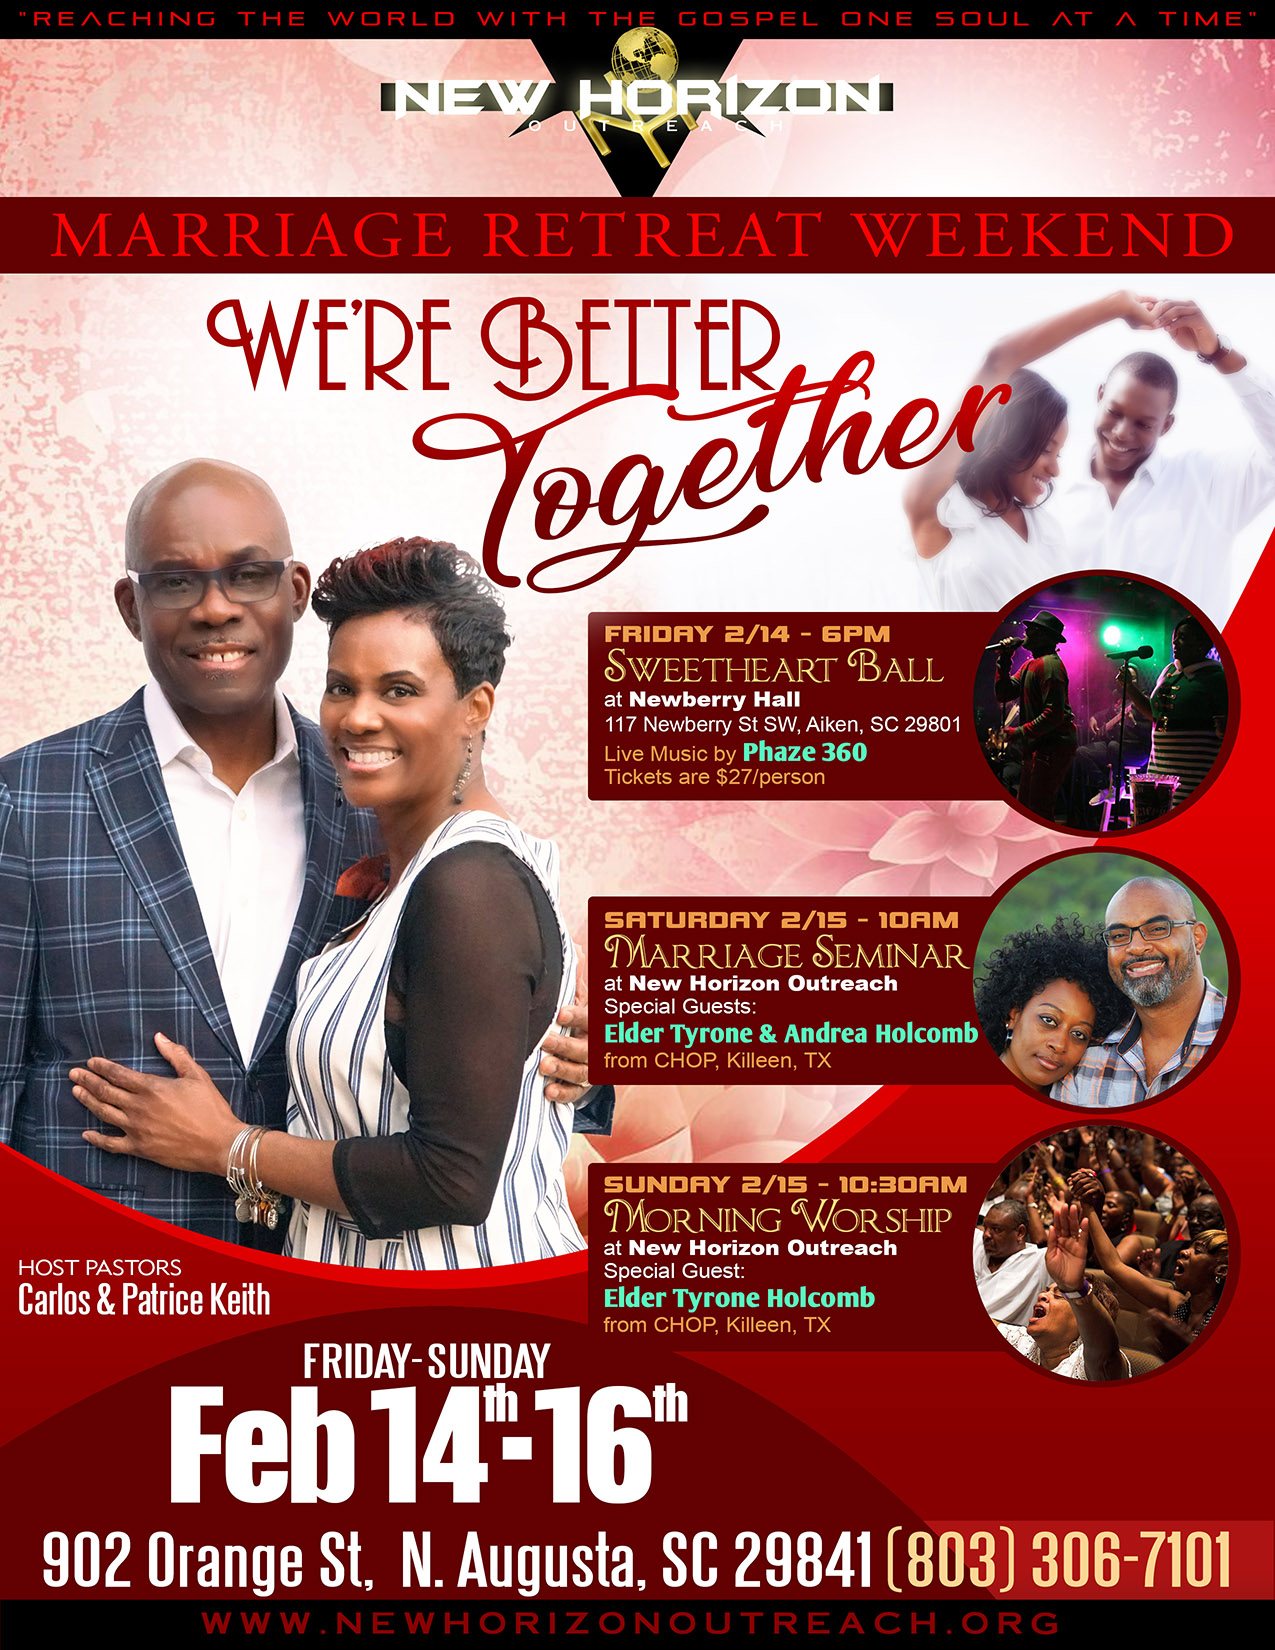 NEW HORIZON OUTREACH MINISTRY MARRIAGE RETREAT